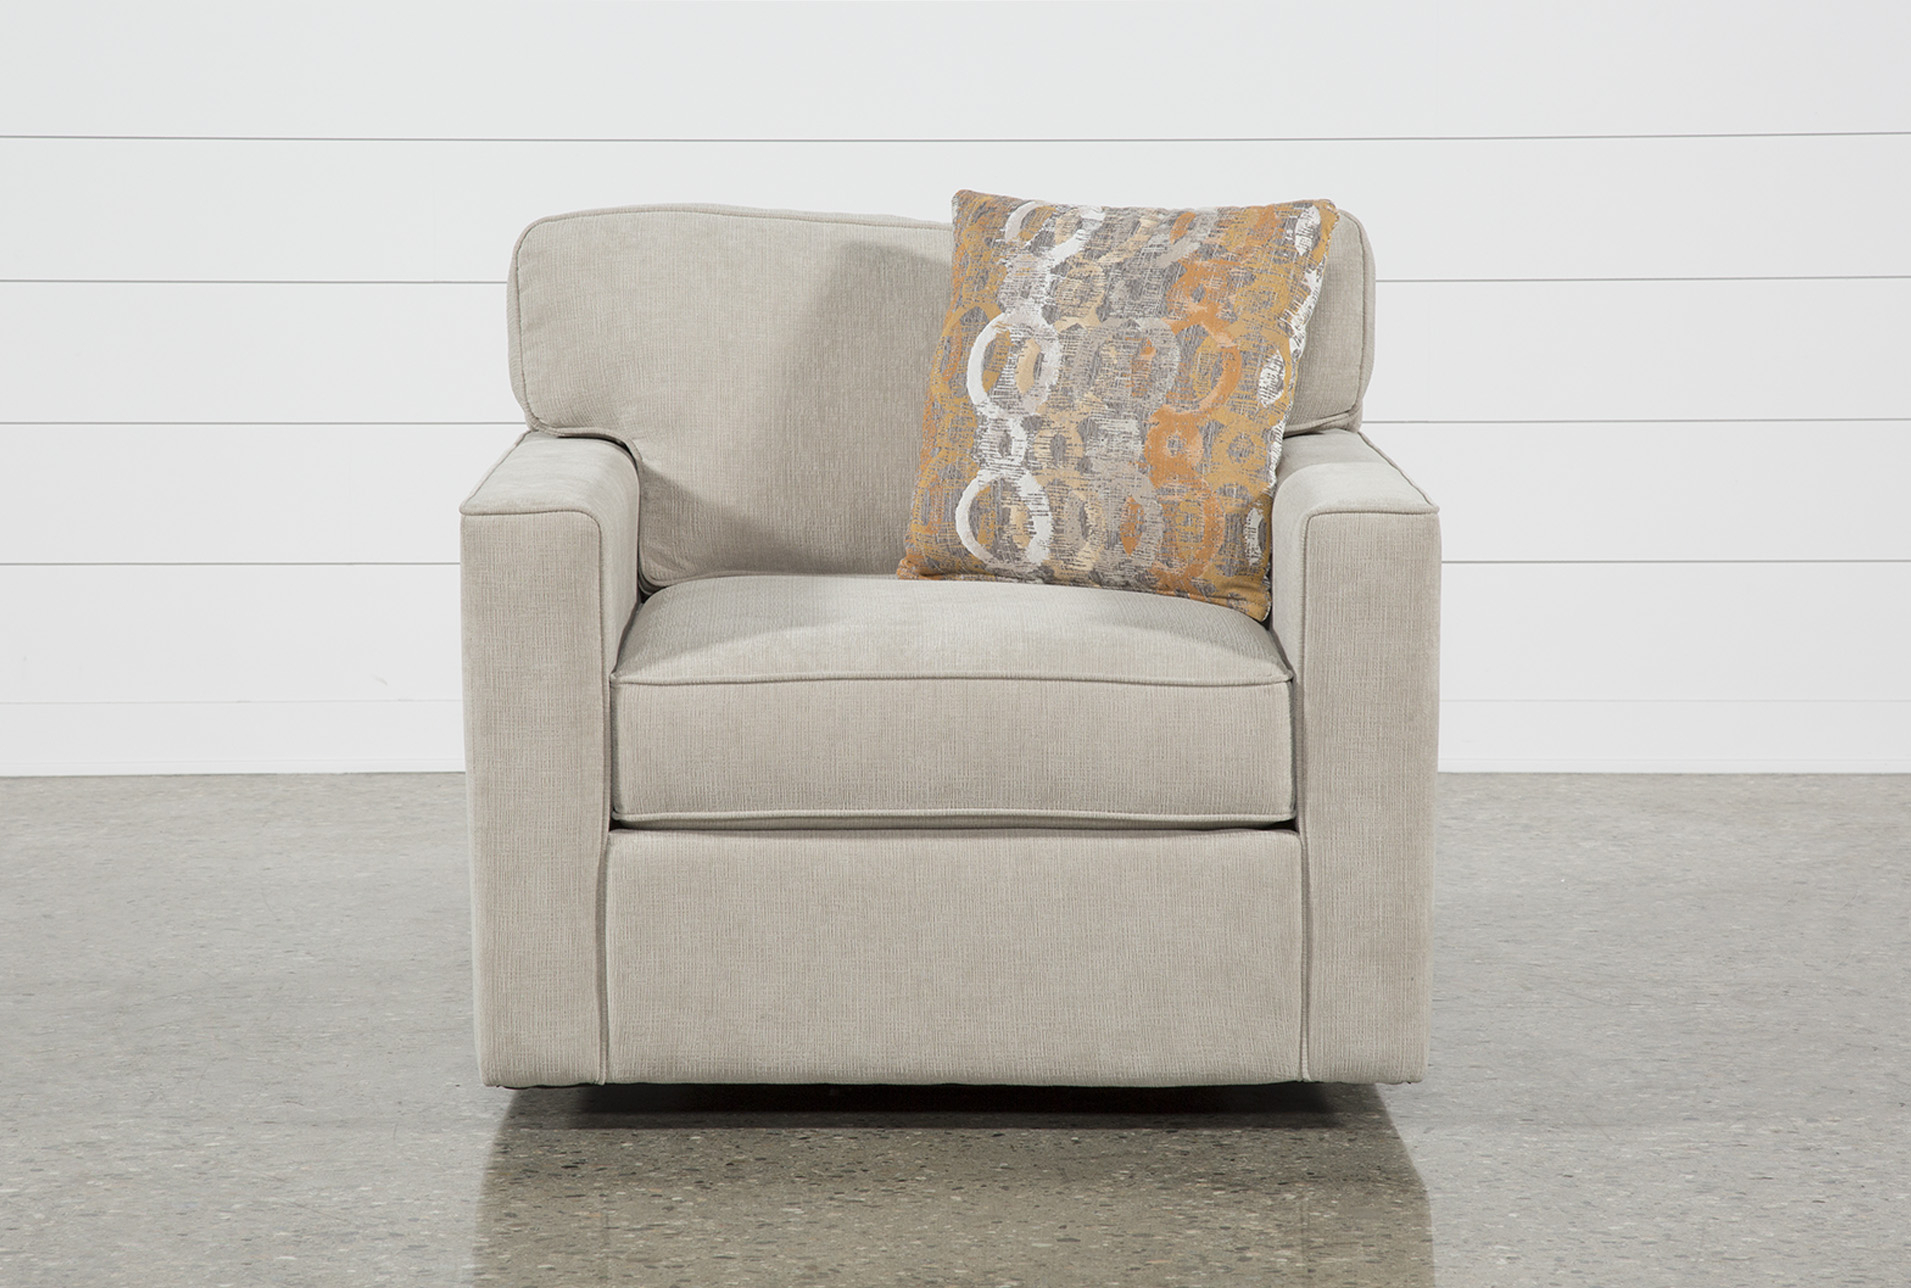 Alder Grande Ii Swivel Chair | Products | Pinterest | Swivel Chair Pertaining To Alder Grande Ii Sofa Chairs (View 4 of 25)